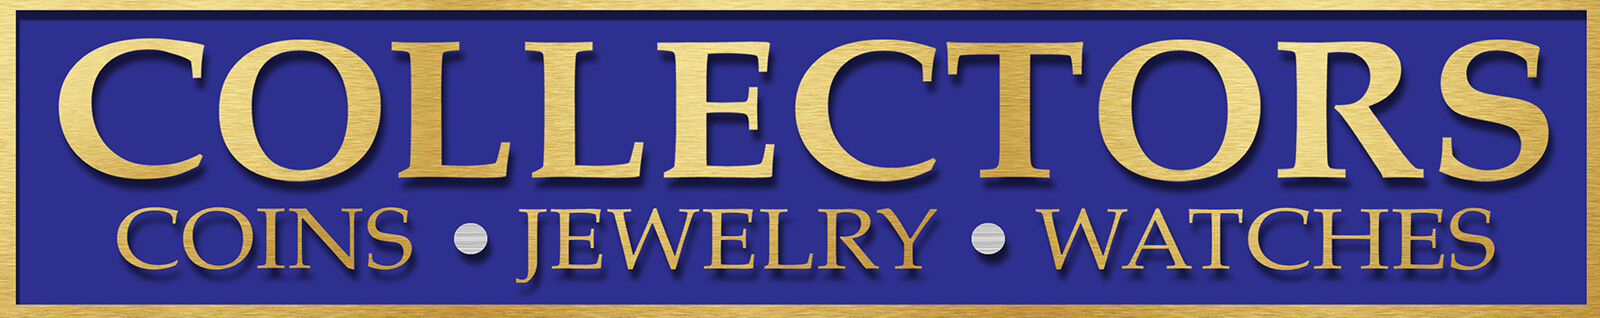 CollectorsCoins&Jewelry